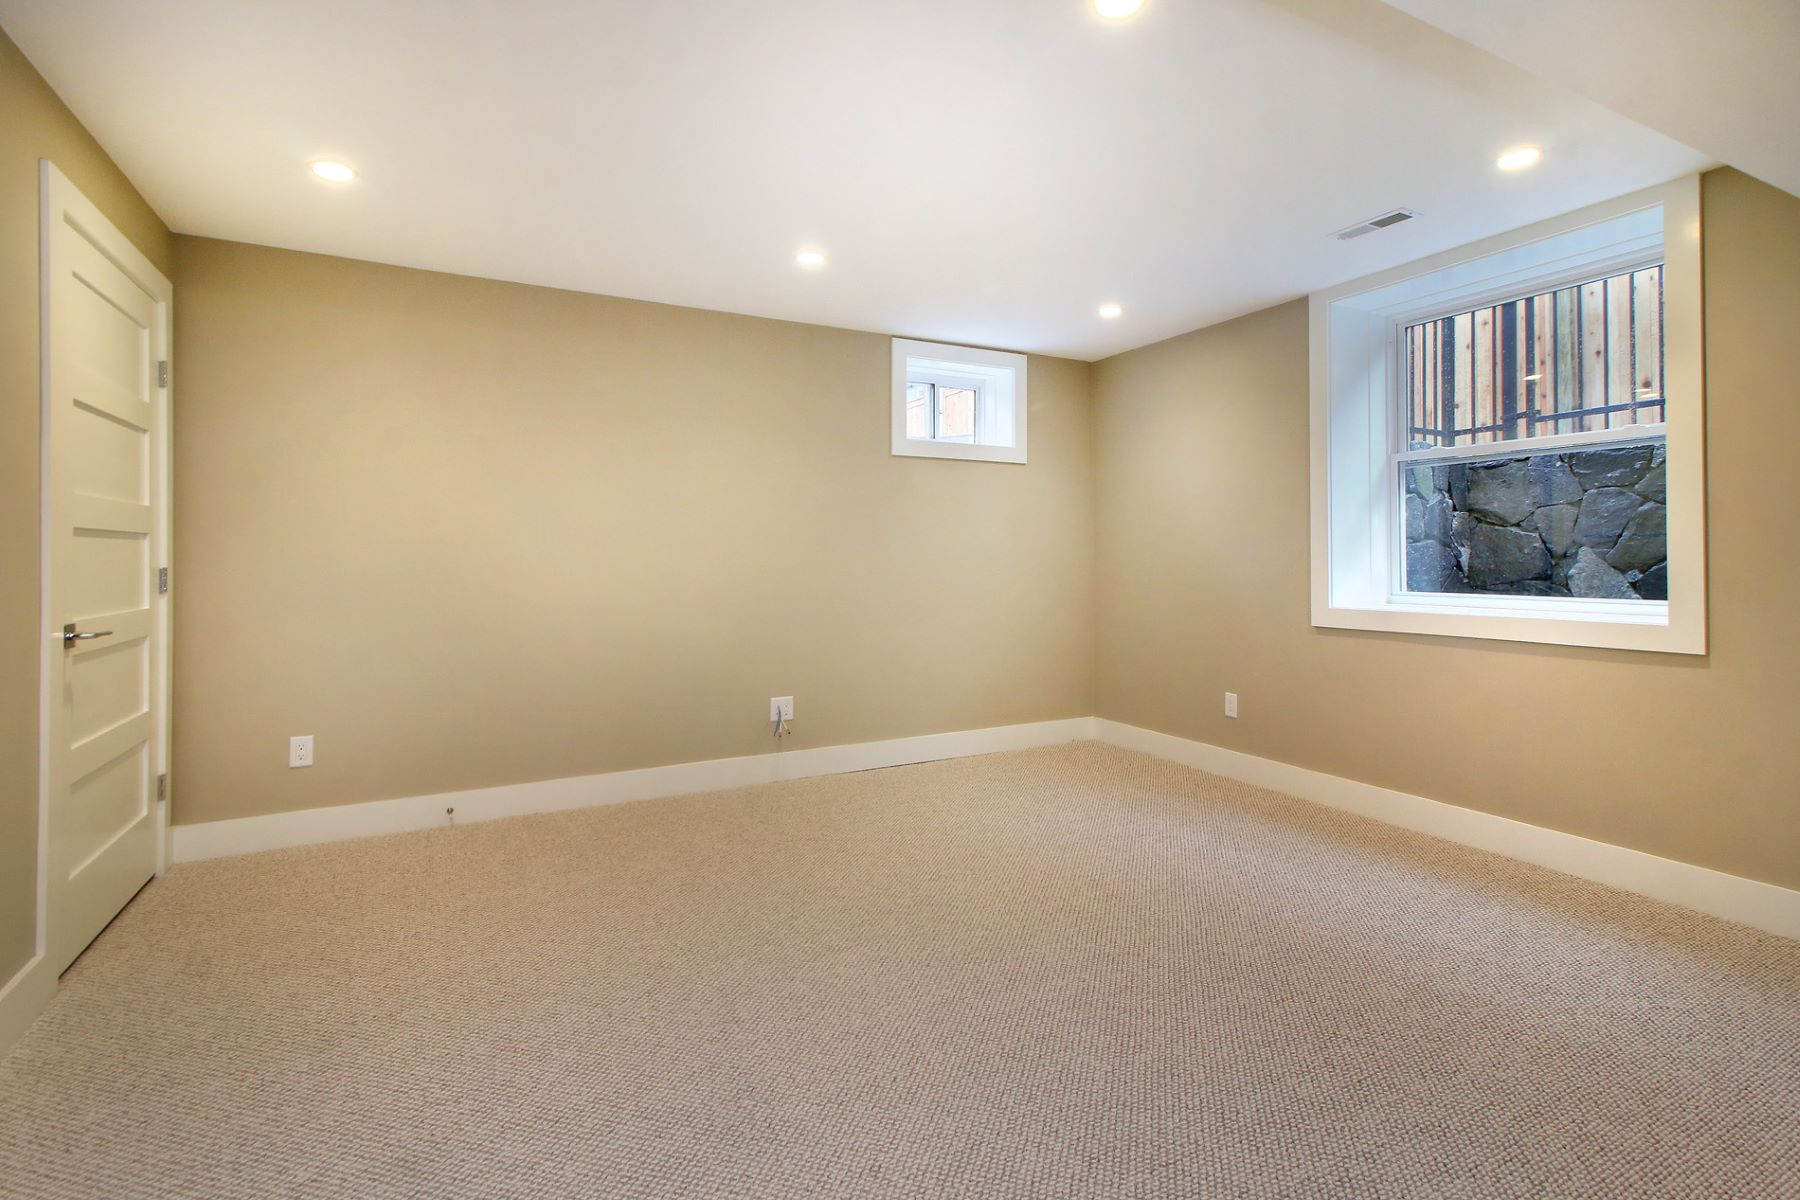 Additional photo for property listing at 16 Keefe Ave B, Newton  Newton, Massachusetts 02464 United States